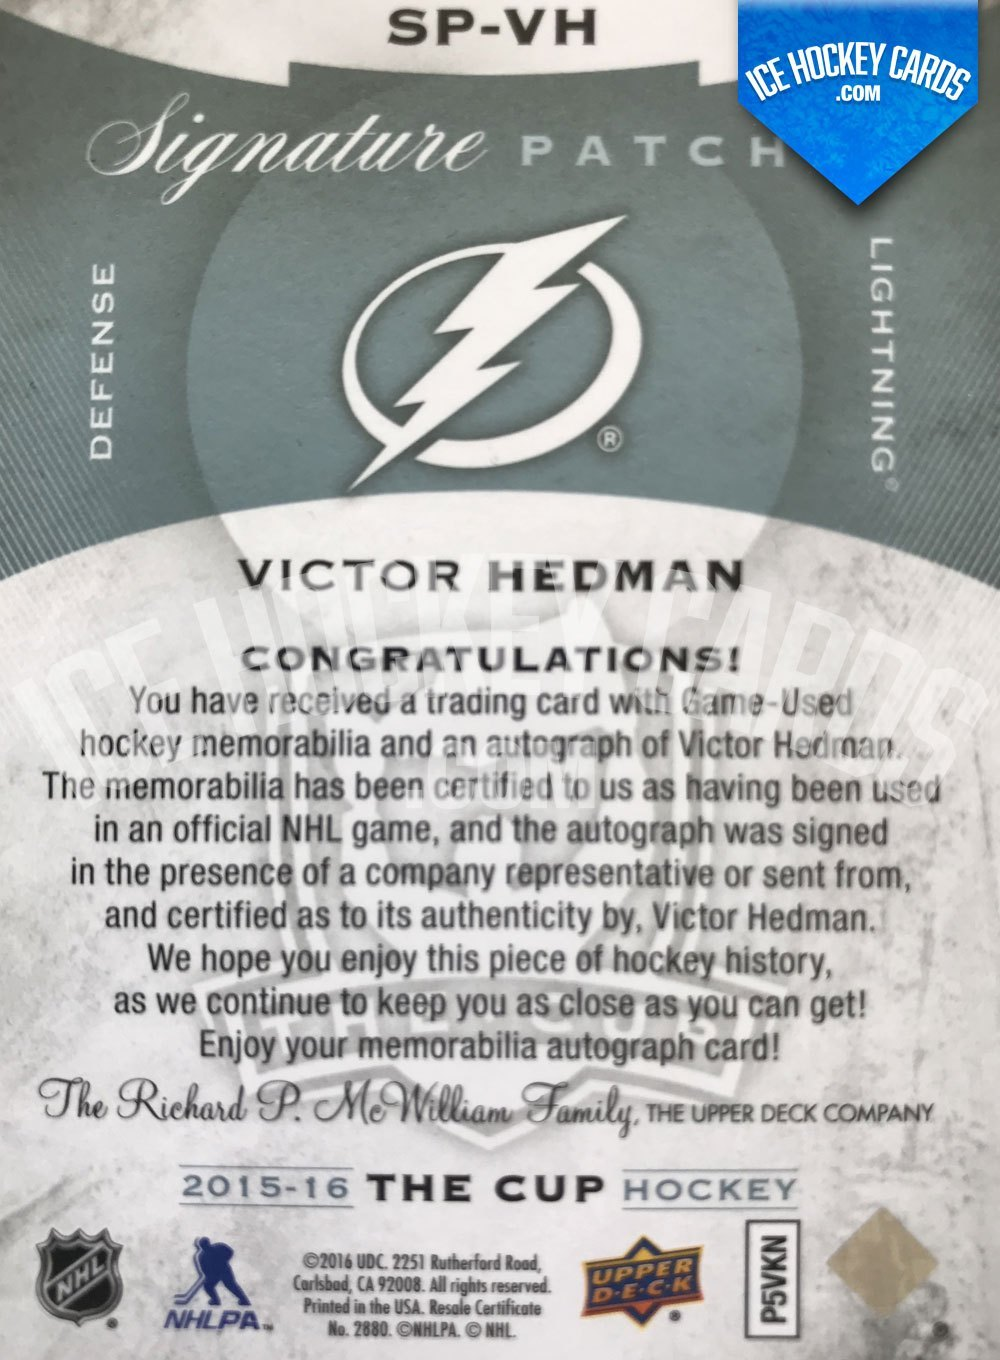 Upper Deck - The Cup 15-16 - Victor Hedman Signature Patches Auto back